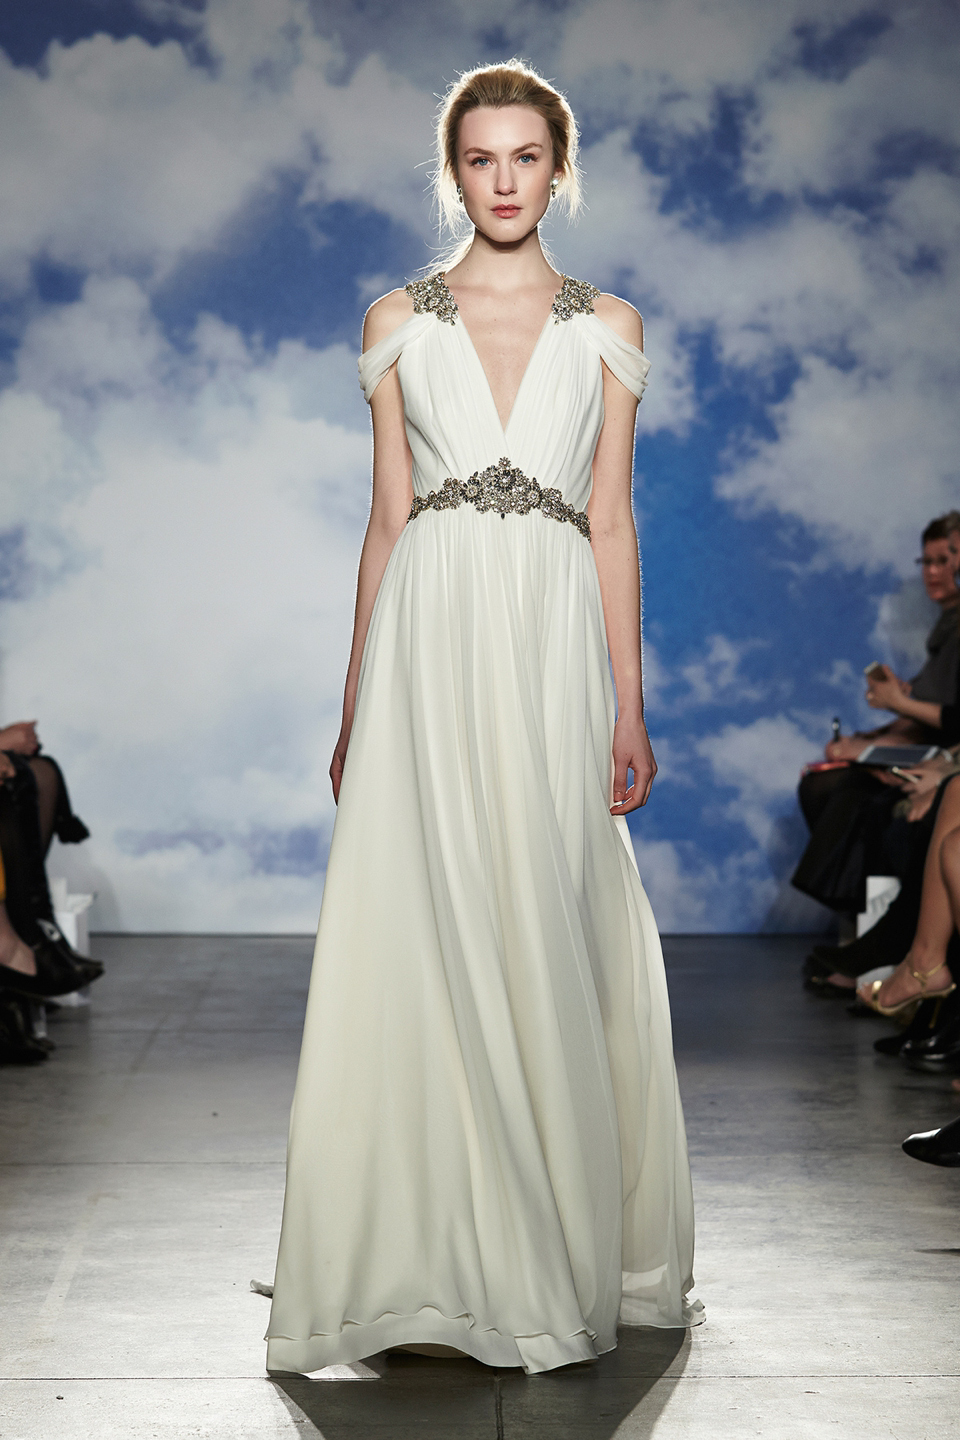 Jenny Packham 2015 Bridal Wear Collection, as showecased at New York Bridal Market, April 2014